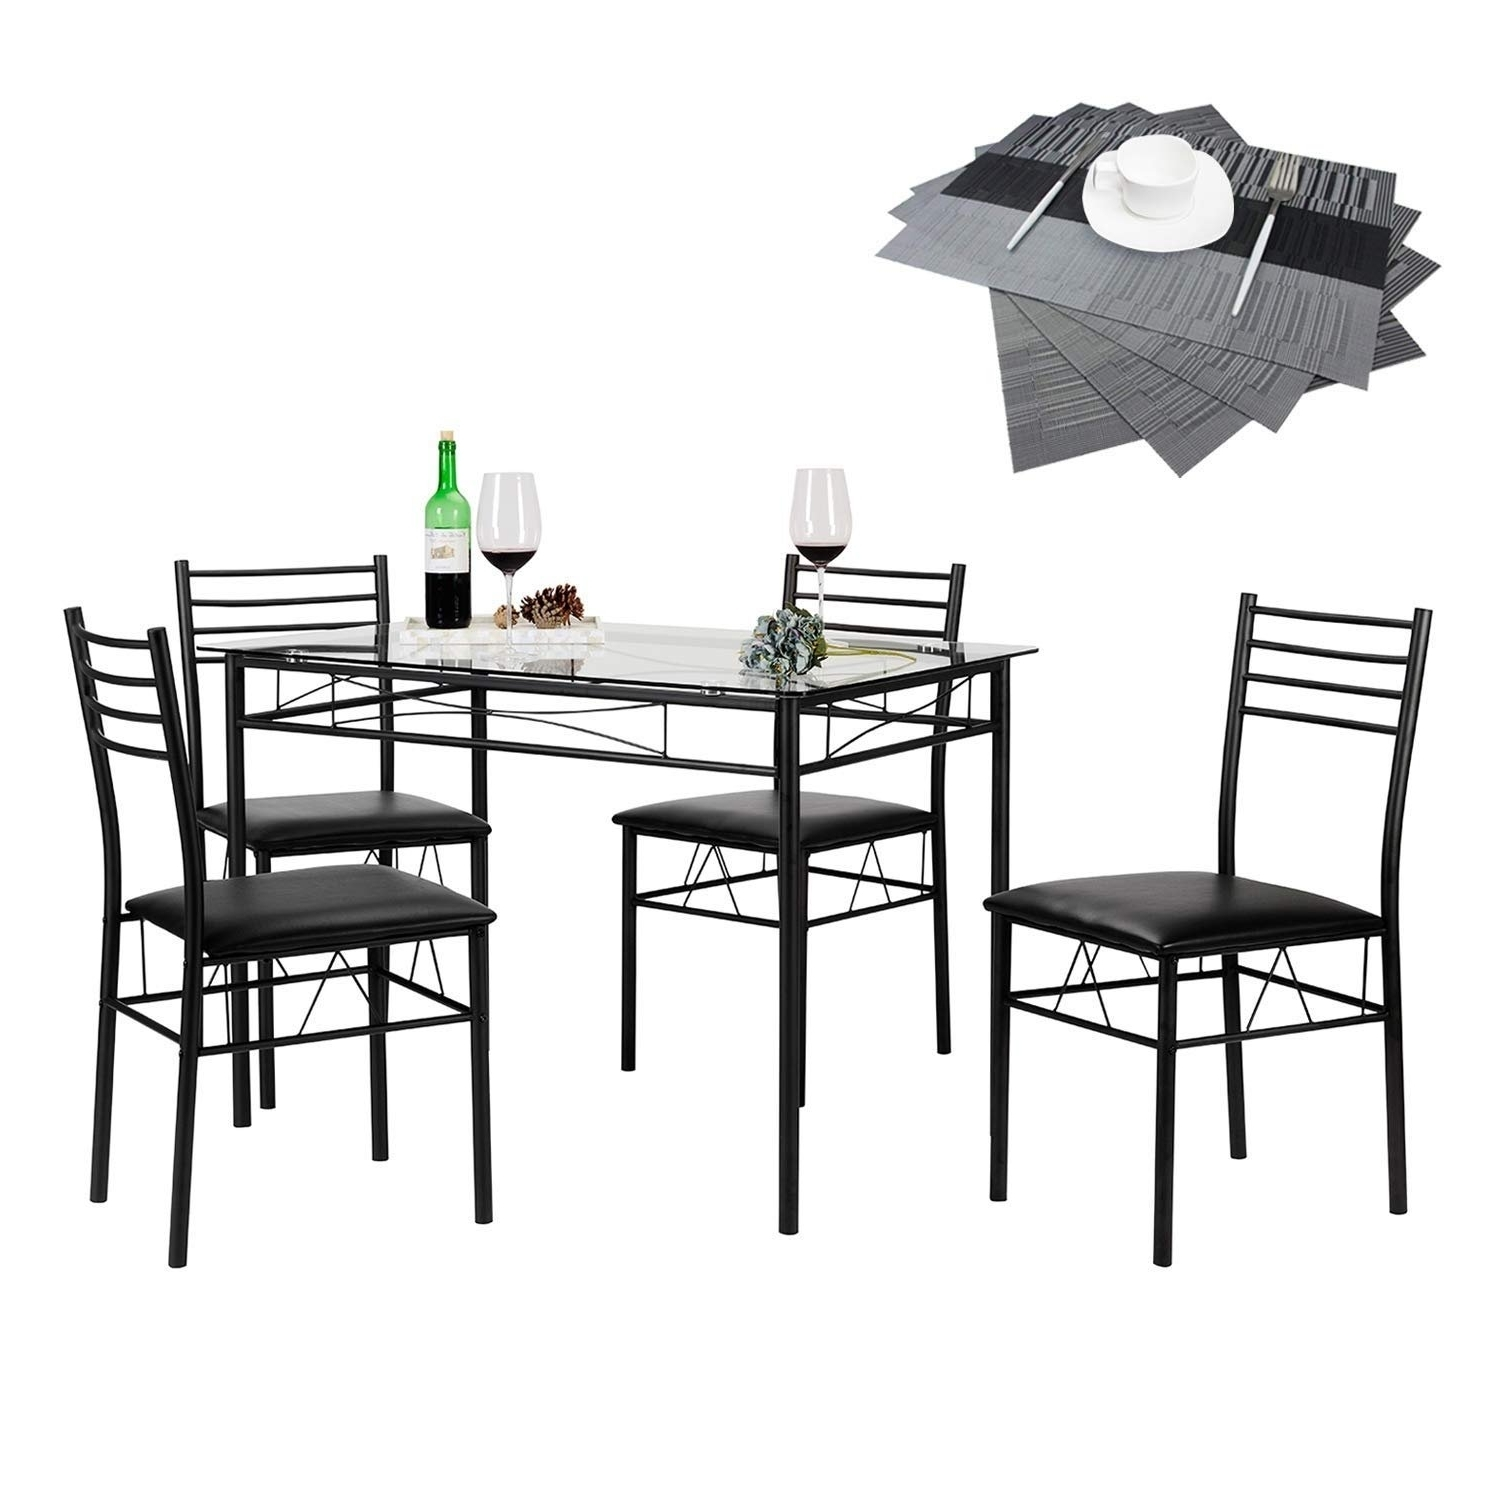 Vecelo Glass Dining Table Set With 4 Chairs Kitchen Table Set Pertaining To Recent Black Glass Dining Tables And 4 Chairs (View 12 of 25)